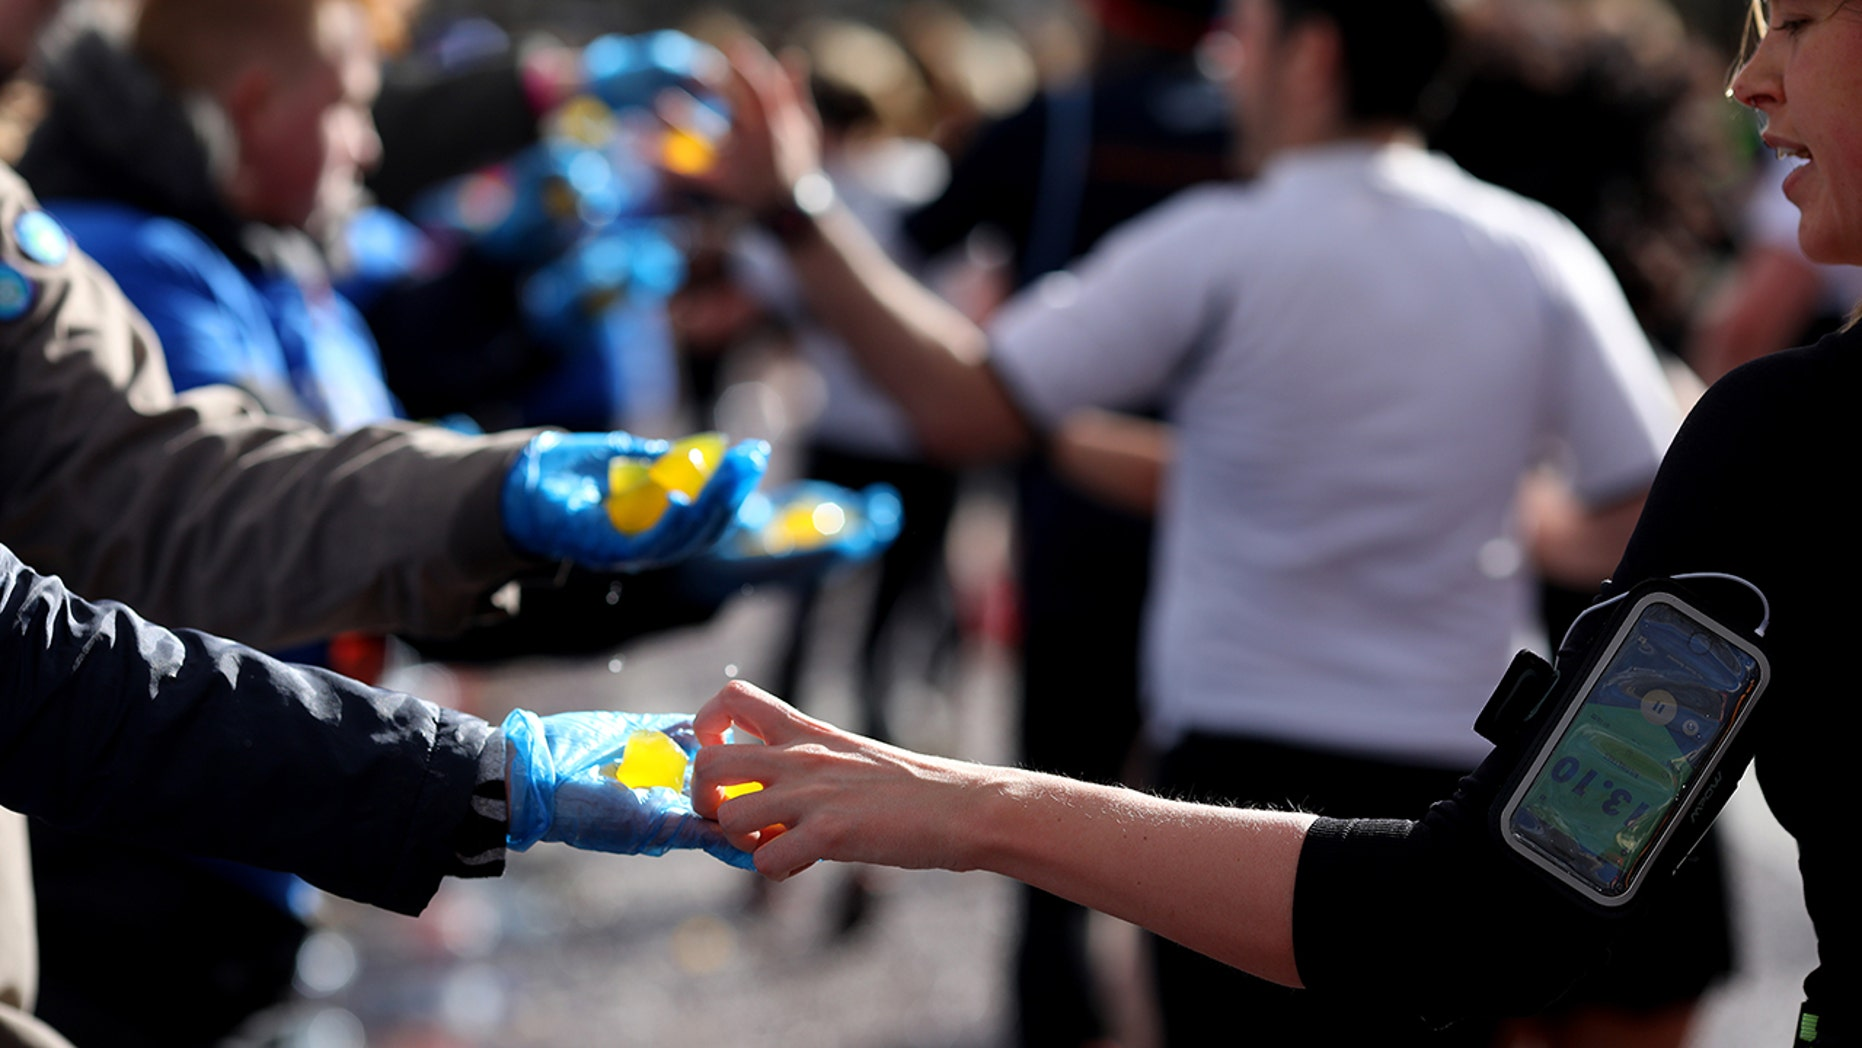 Competitors grab edible seaweed capsules during the Vitality Big Half on March 10 in London. (Photo by Charlie Crowhurst/Getty Images for Lucozade Sport)